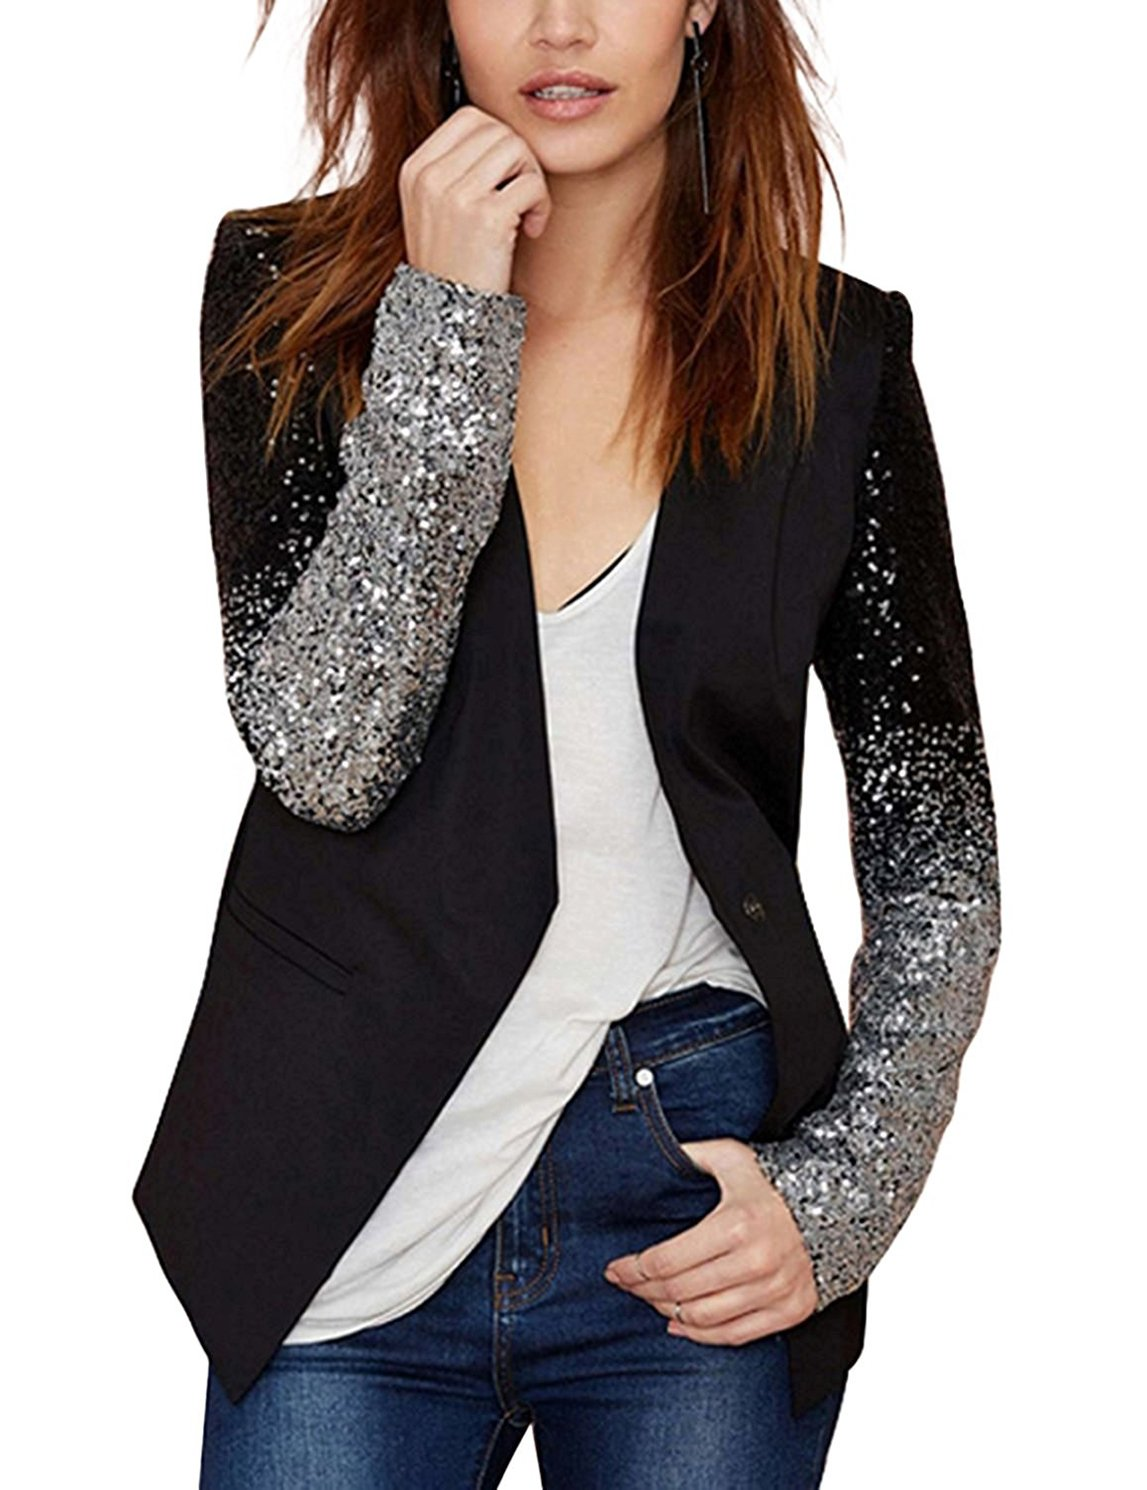 RICHKOKO Women Long Sleeve Patchwork Sequins V-Neck PU Collar Button Jacket(L,Black)